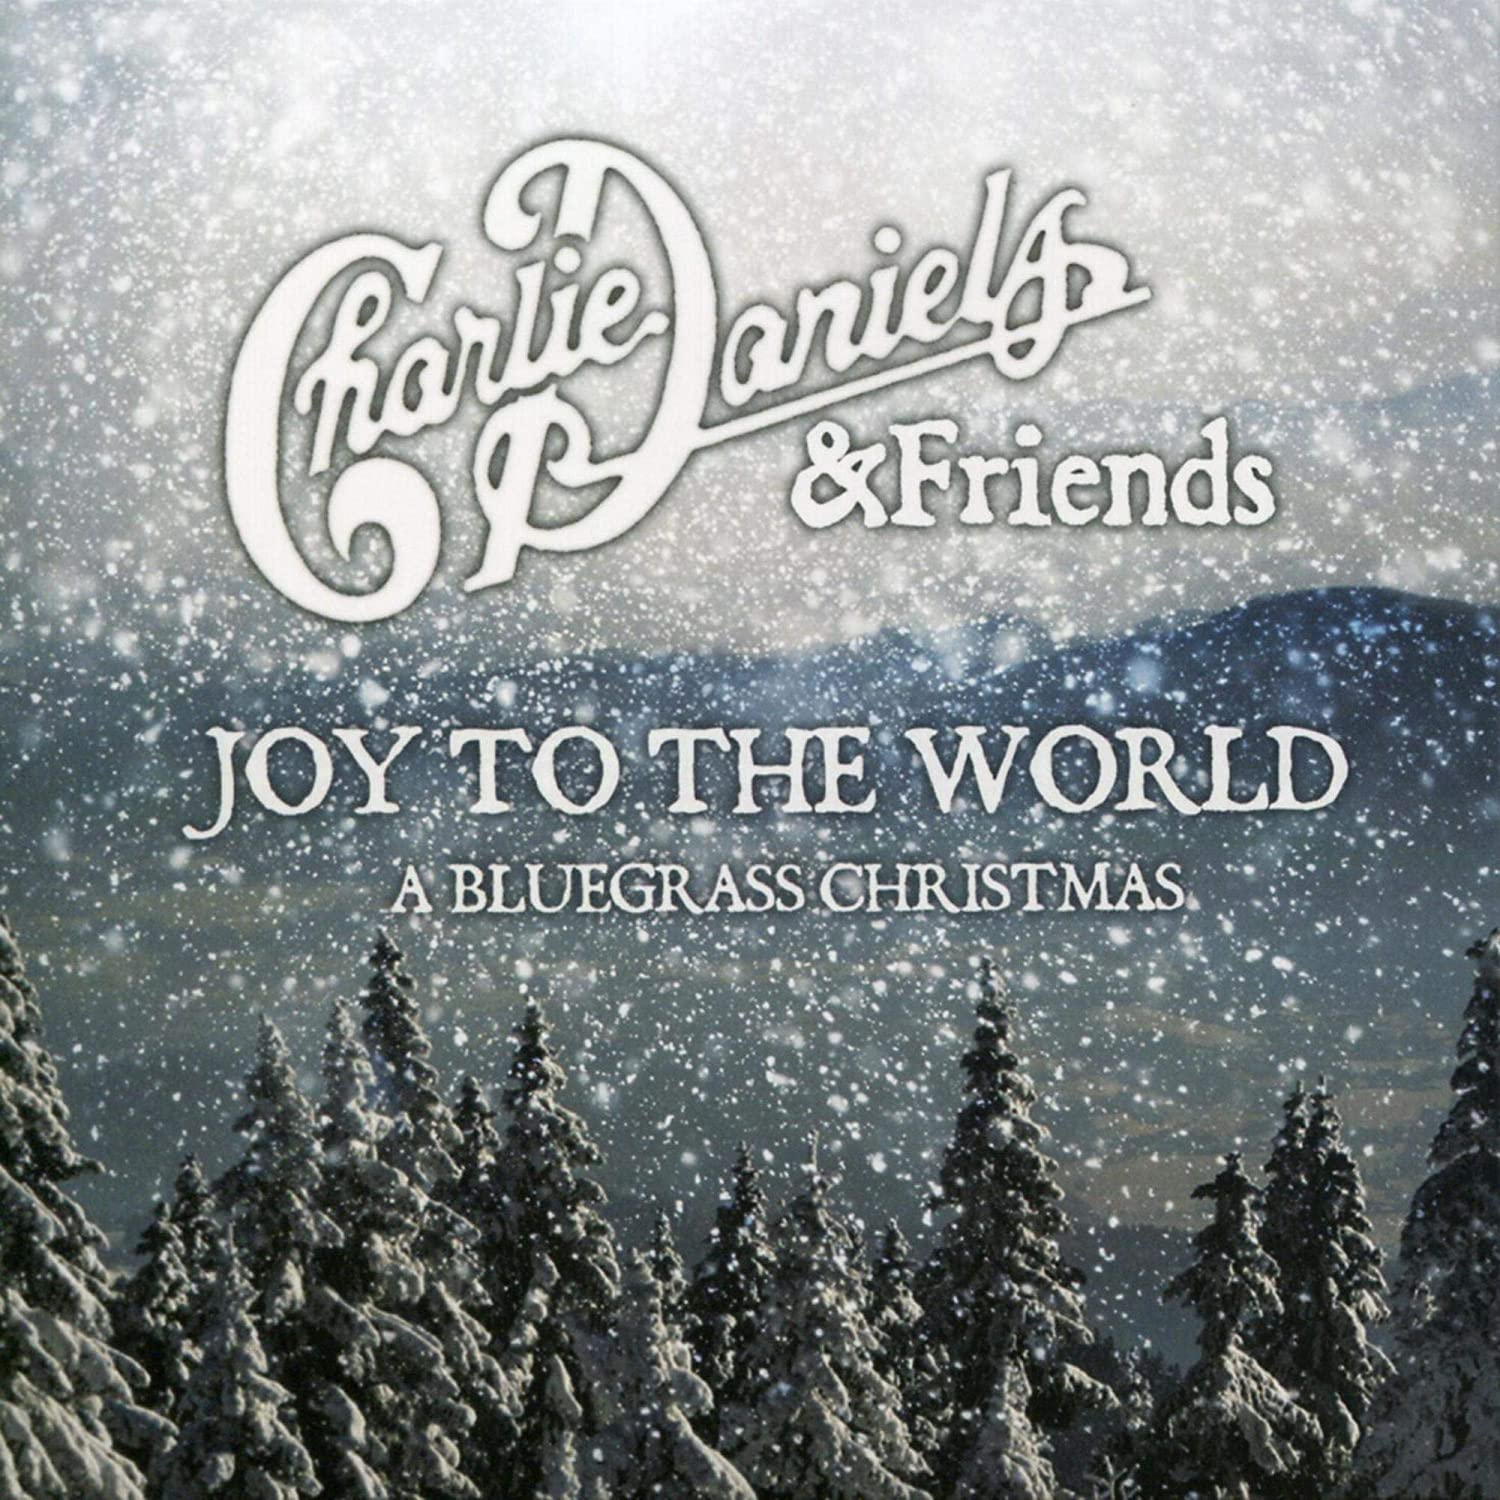 Charlie Daniels - Joy To The World: A Bluegrass Christmas [CD+DVD]